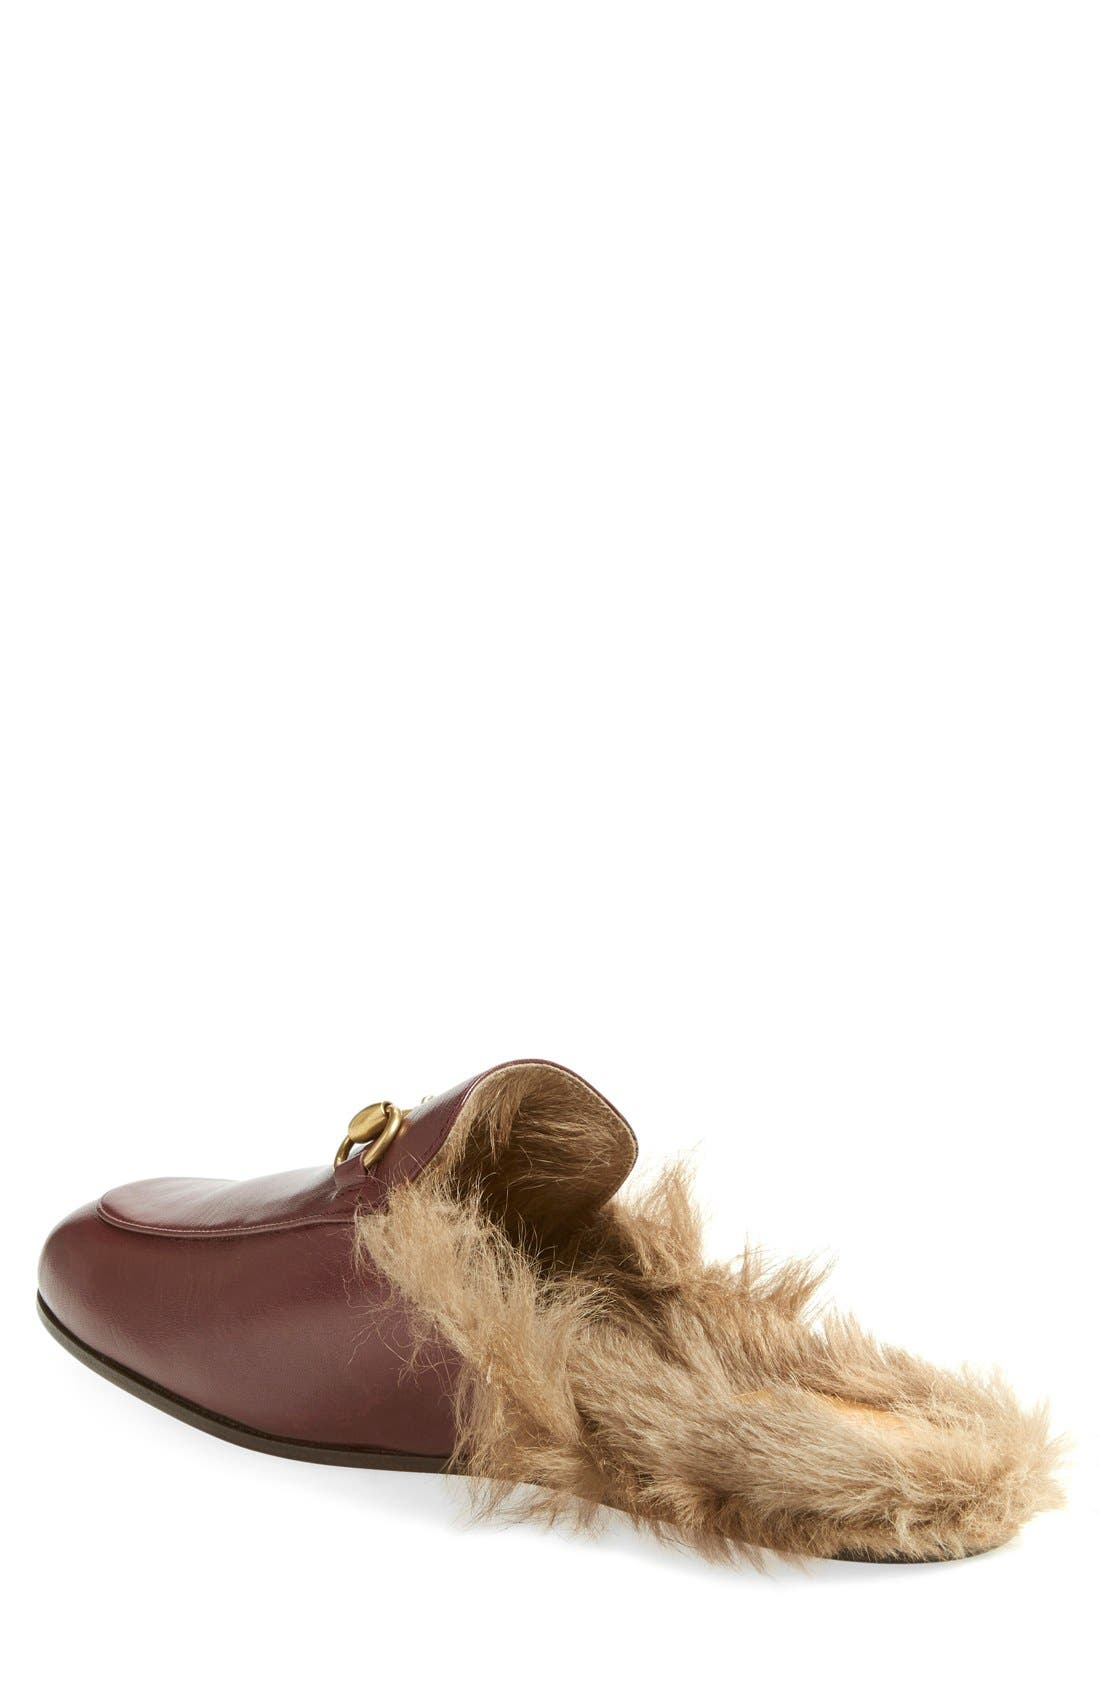 Princetown Genuine Shearling Lined Mule Loafer,                             Alternate thumbnail 2, color,                             Red/ Tea Leather